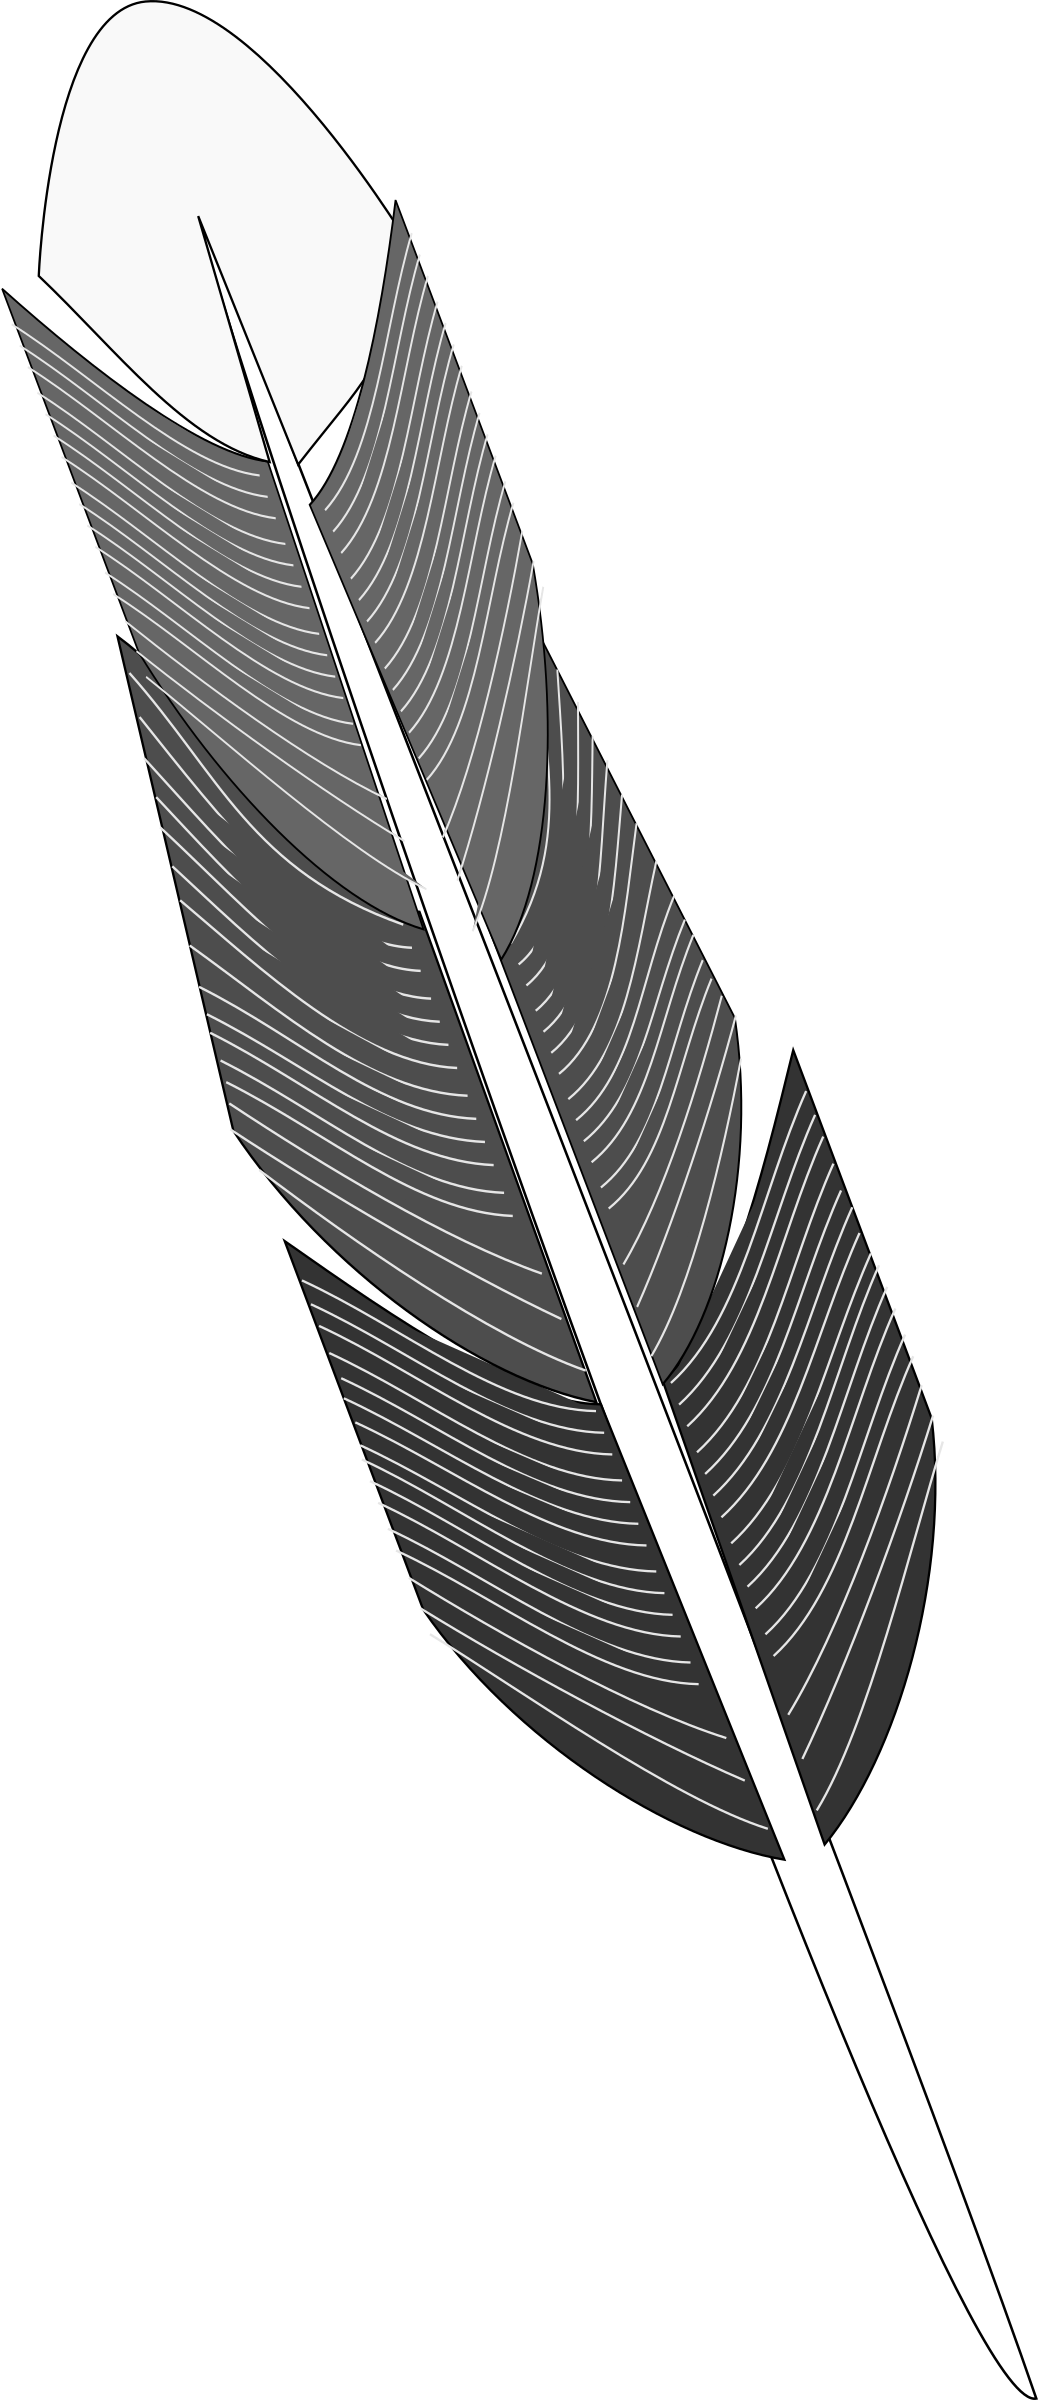 Grayscale Feather by algotruneman